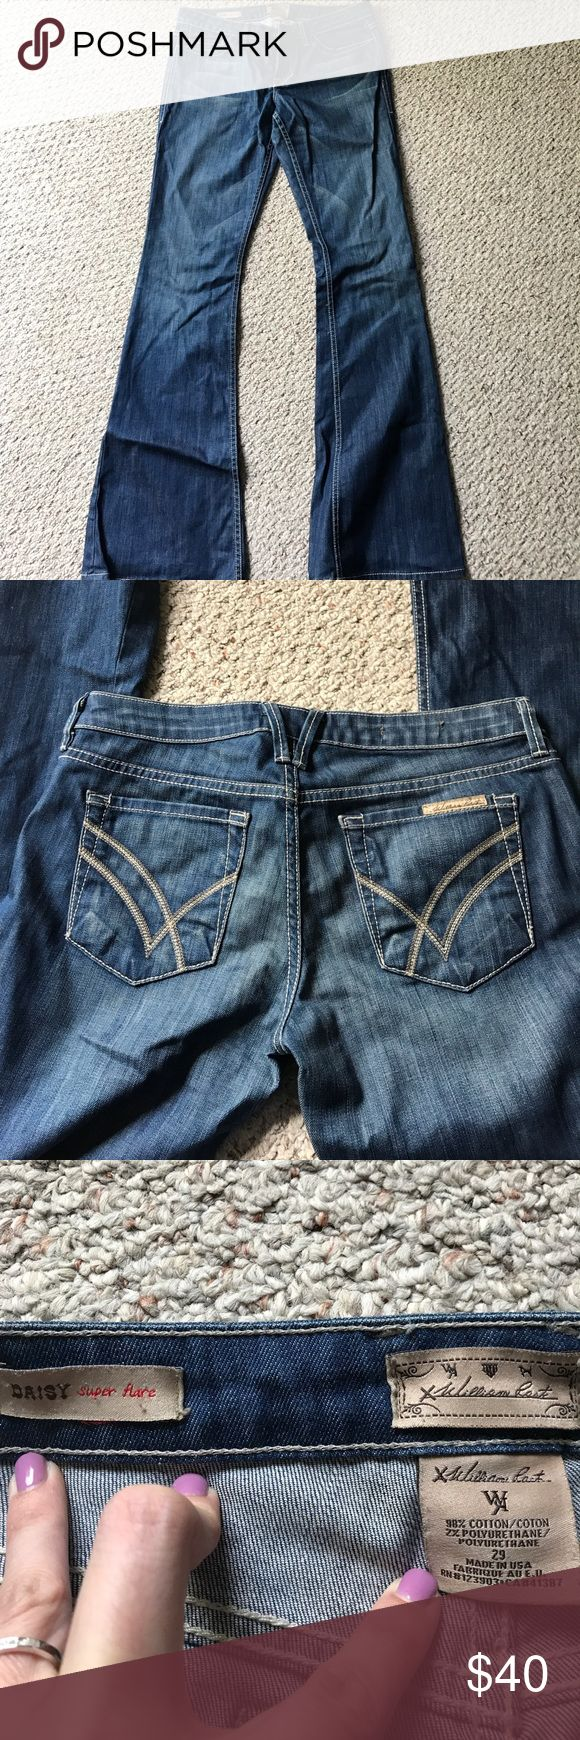 William Rast Daisy super flare jeans size 29 Gently used jeans with a cool rinse and great back pockets! Bottom legs have some wear but not much-shown in last picture! William Rast Jeans Flare & Wide Leg